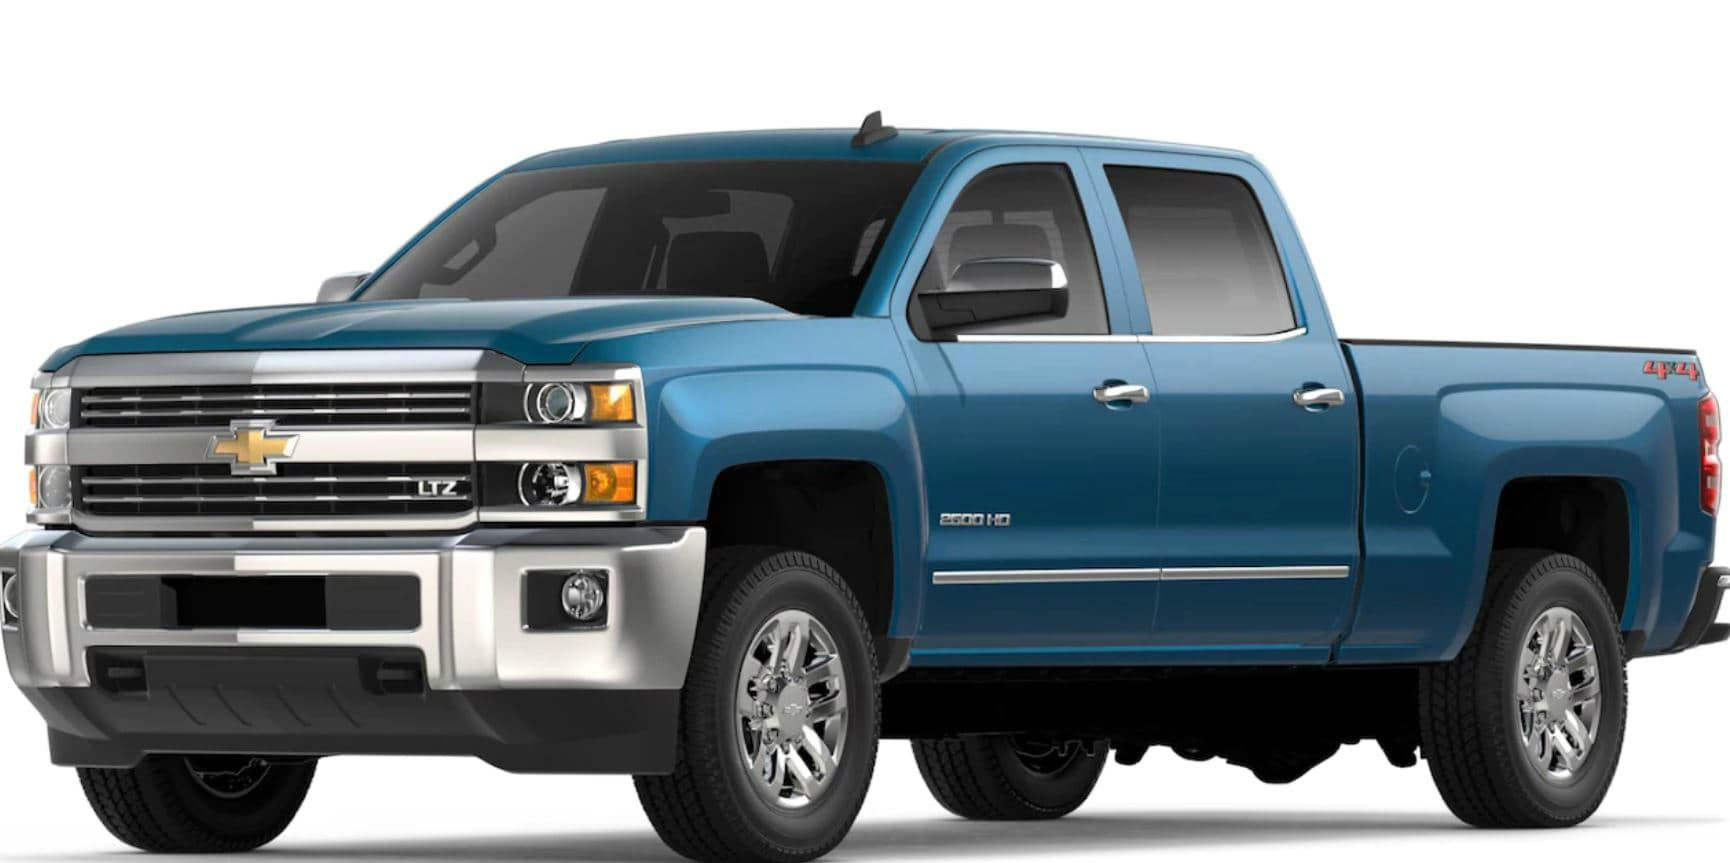 2018 chevy silverado vs 2018 gmc sierra naperville il. Black Bedroom Furniture Sets. Home Design Ideas